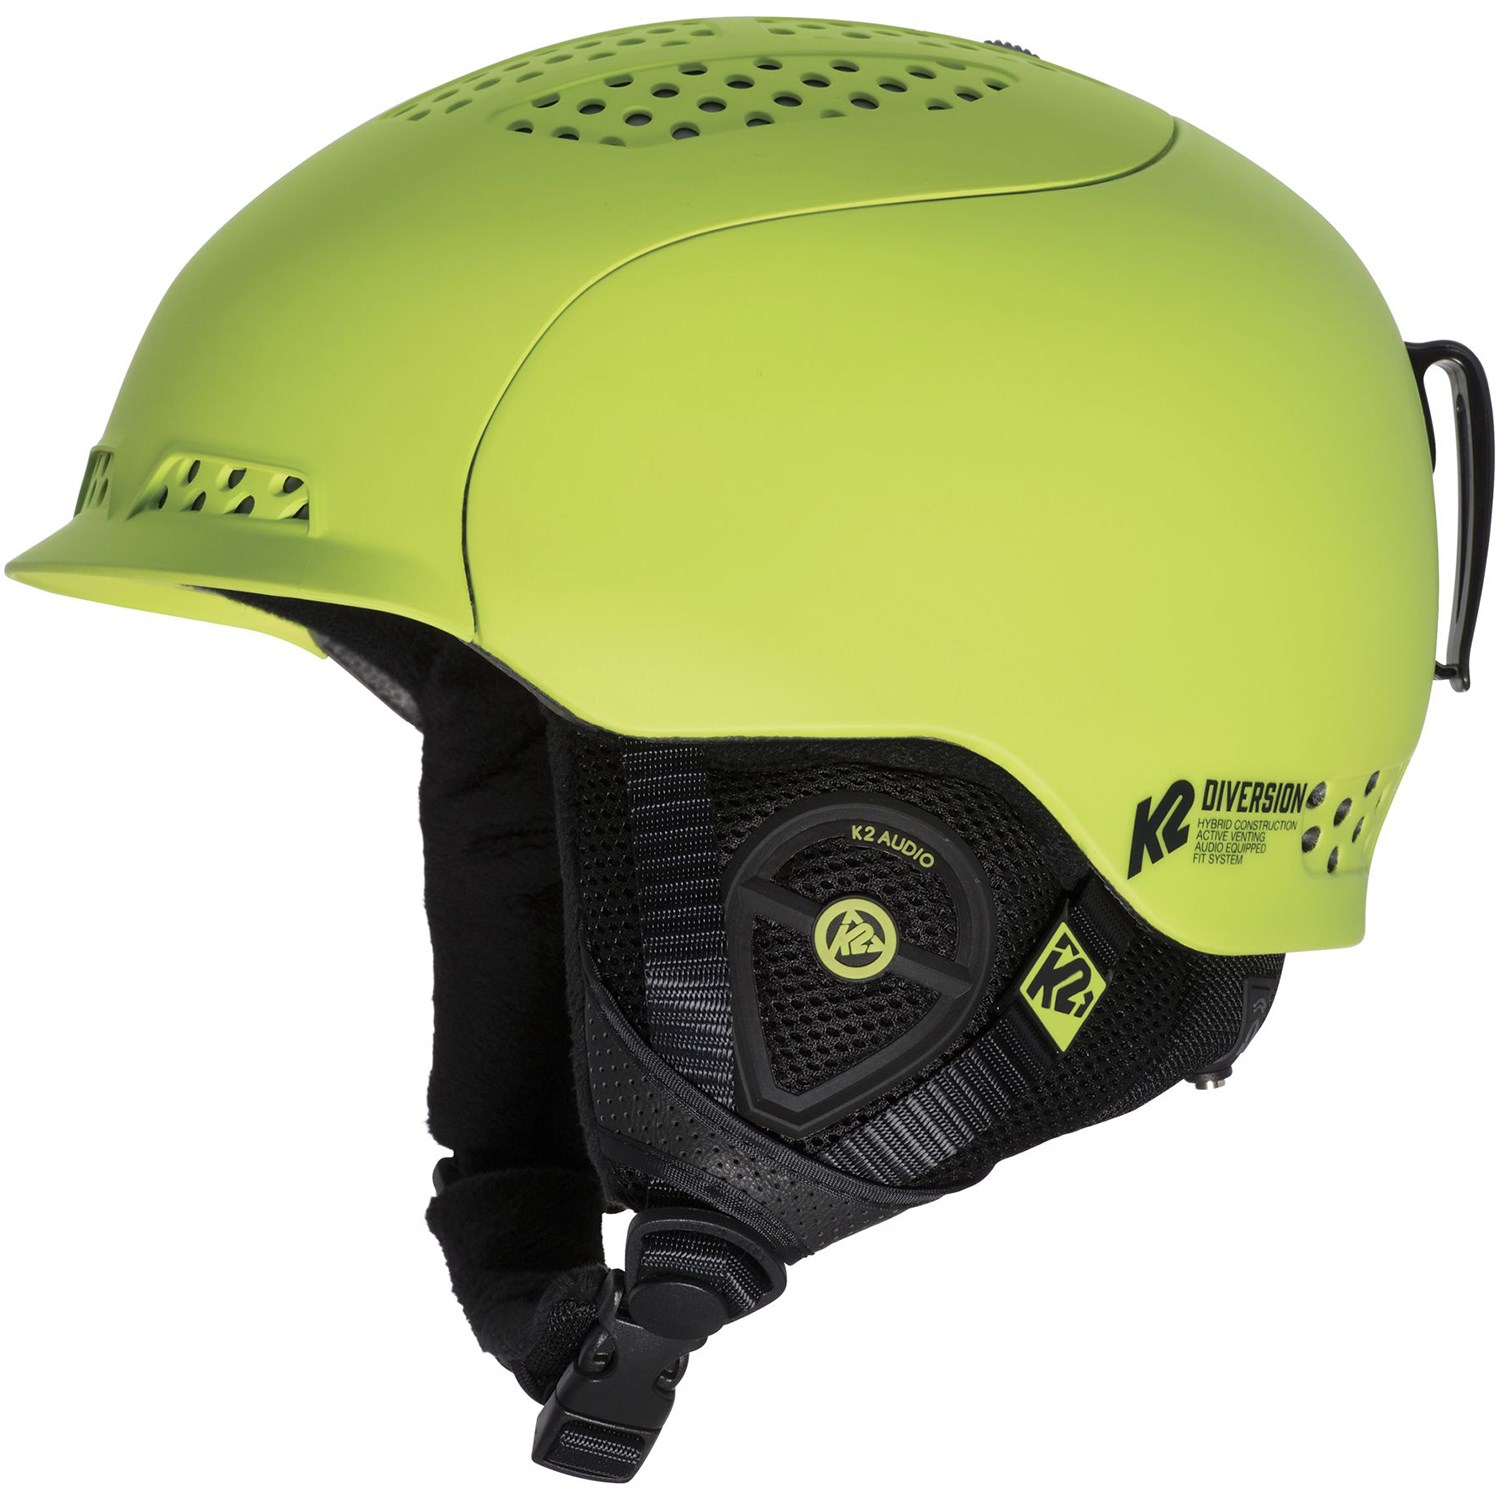 hight resolution of  aviation headset install and the provided wiring diagram was more k2 diversion helmet evo